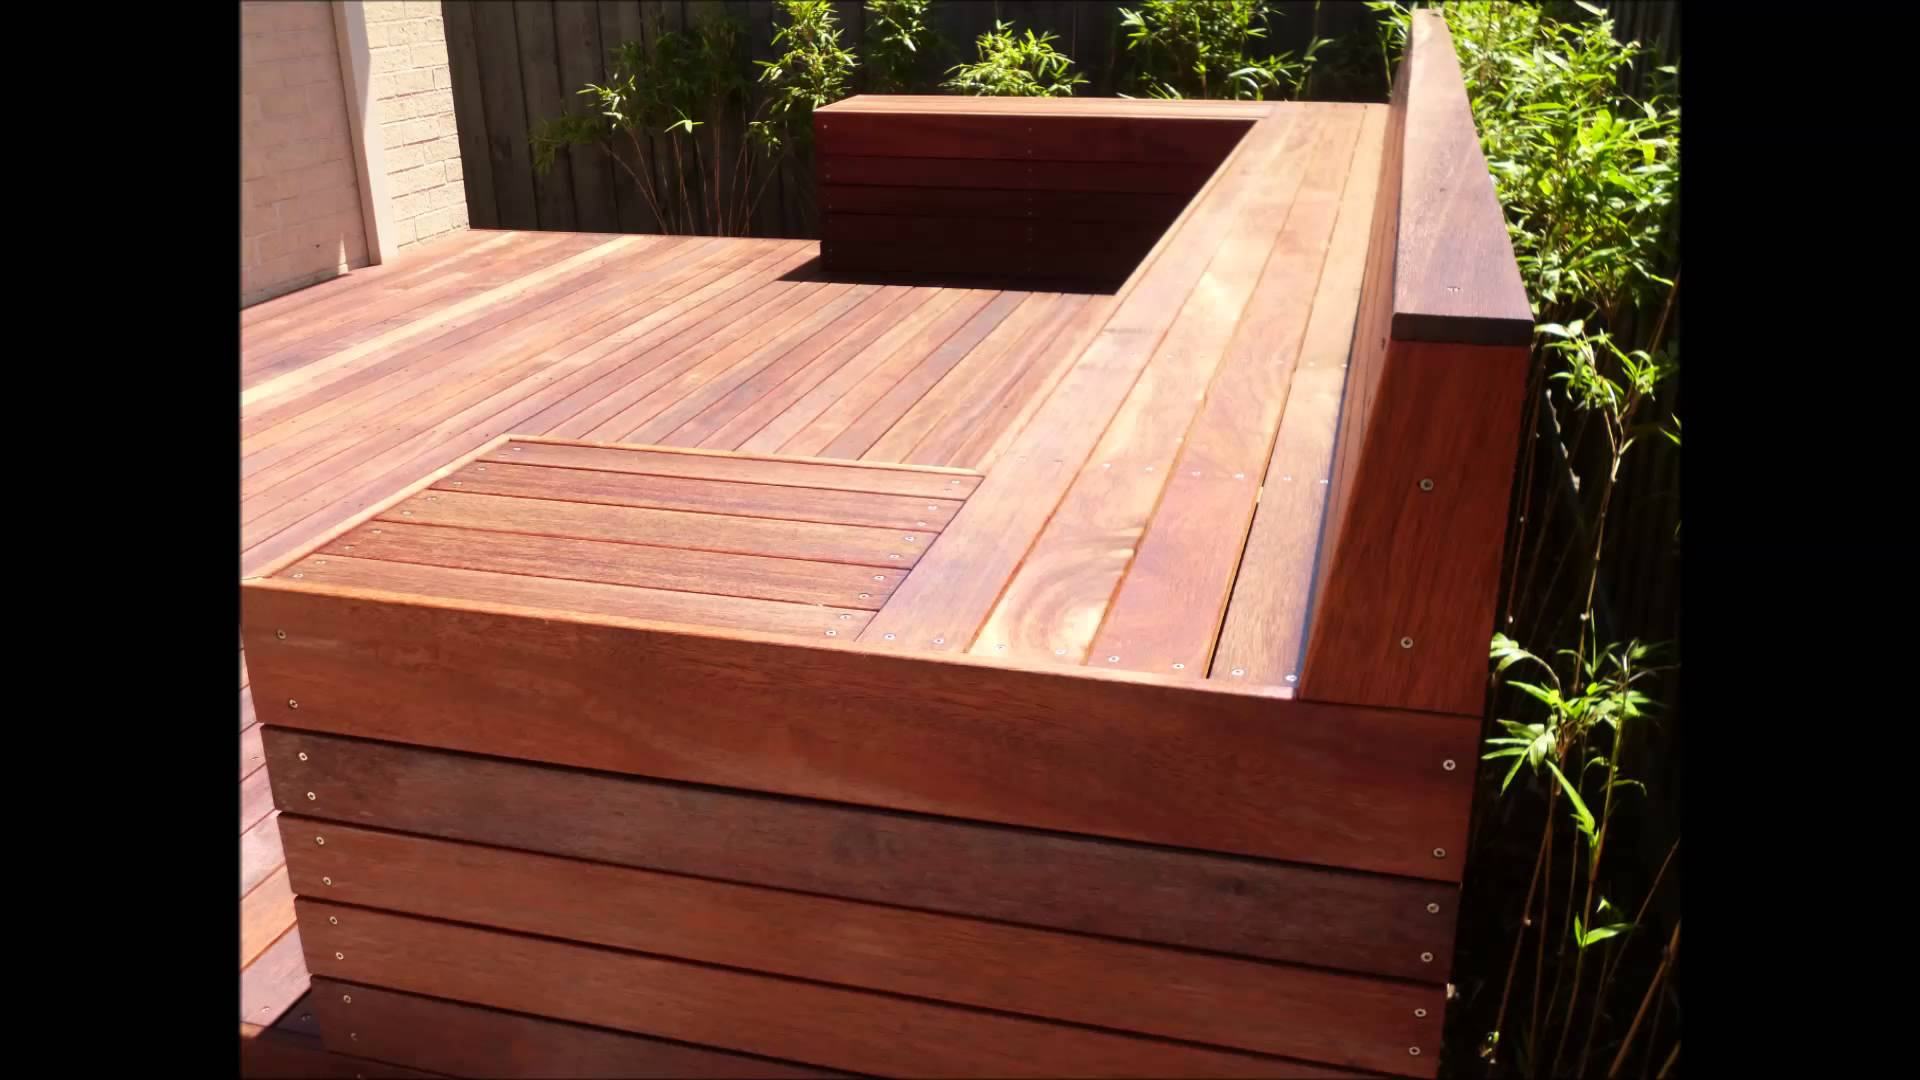 Merbau Decking Seat